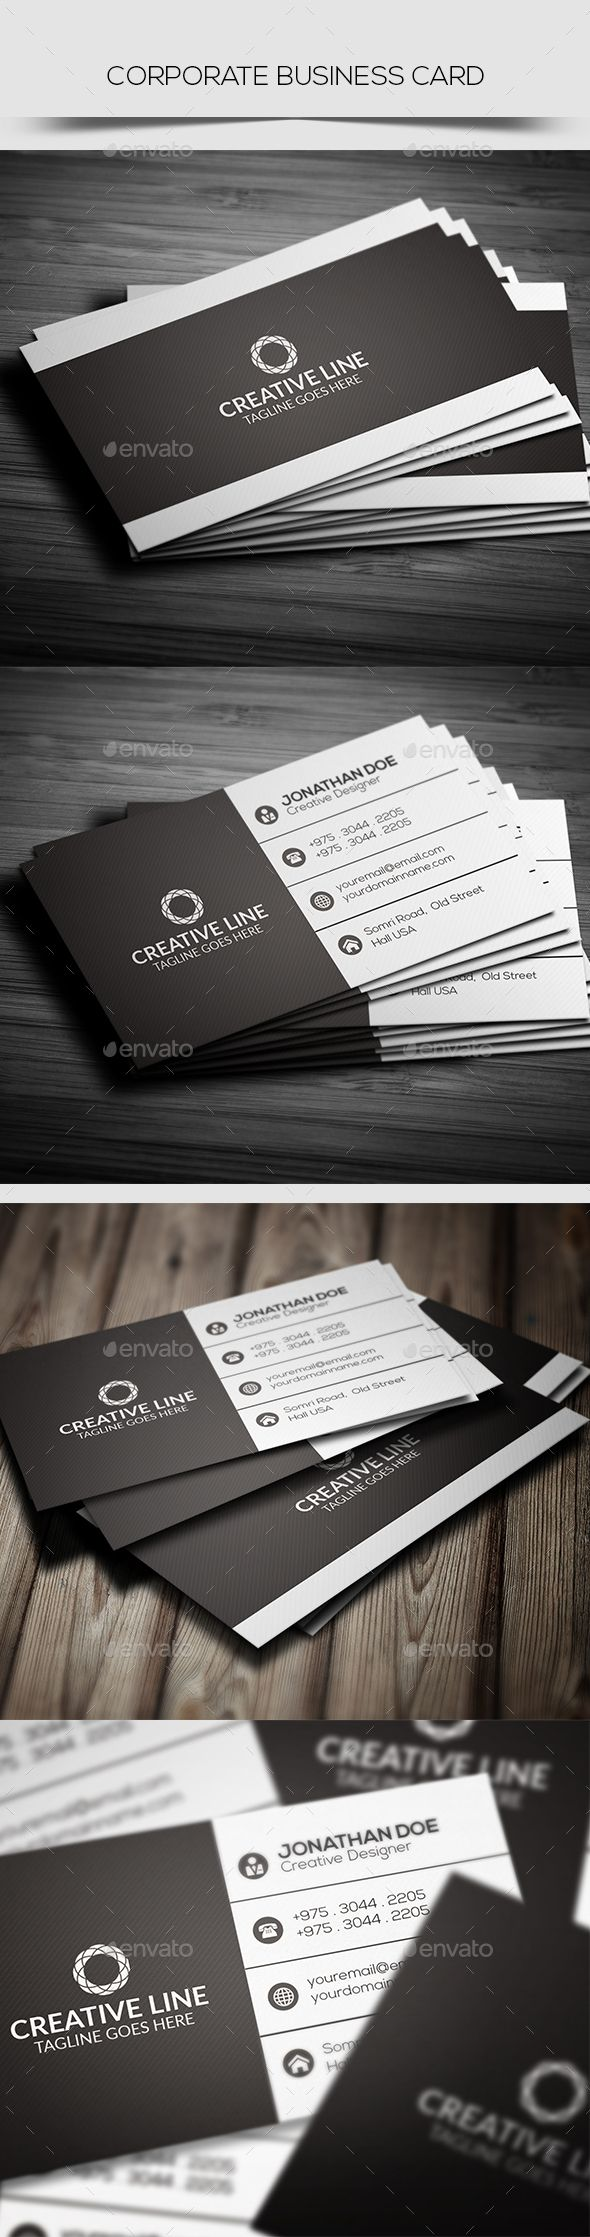 #Corporate Business Card - Corporate #Business #Cards Download here:  https://graphicriver.net/item/corporate-business-card/20333755?ref=alena994